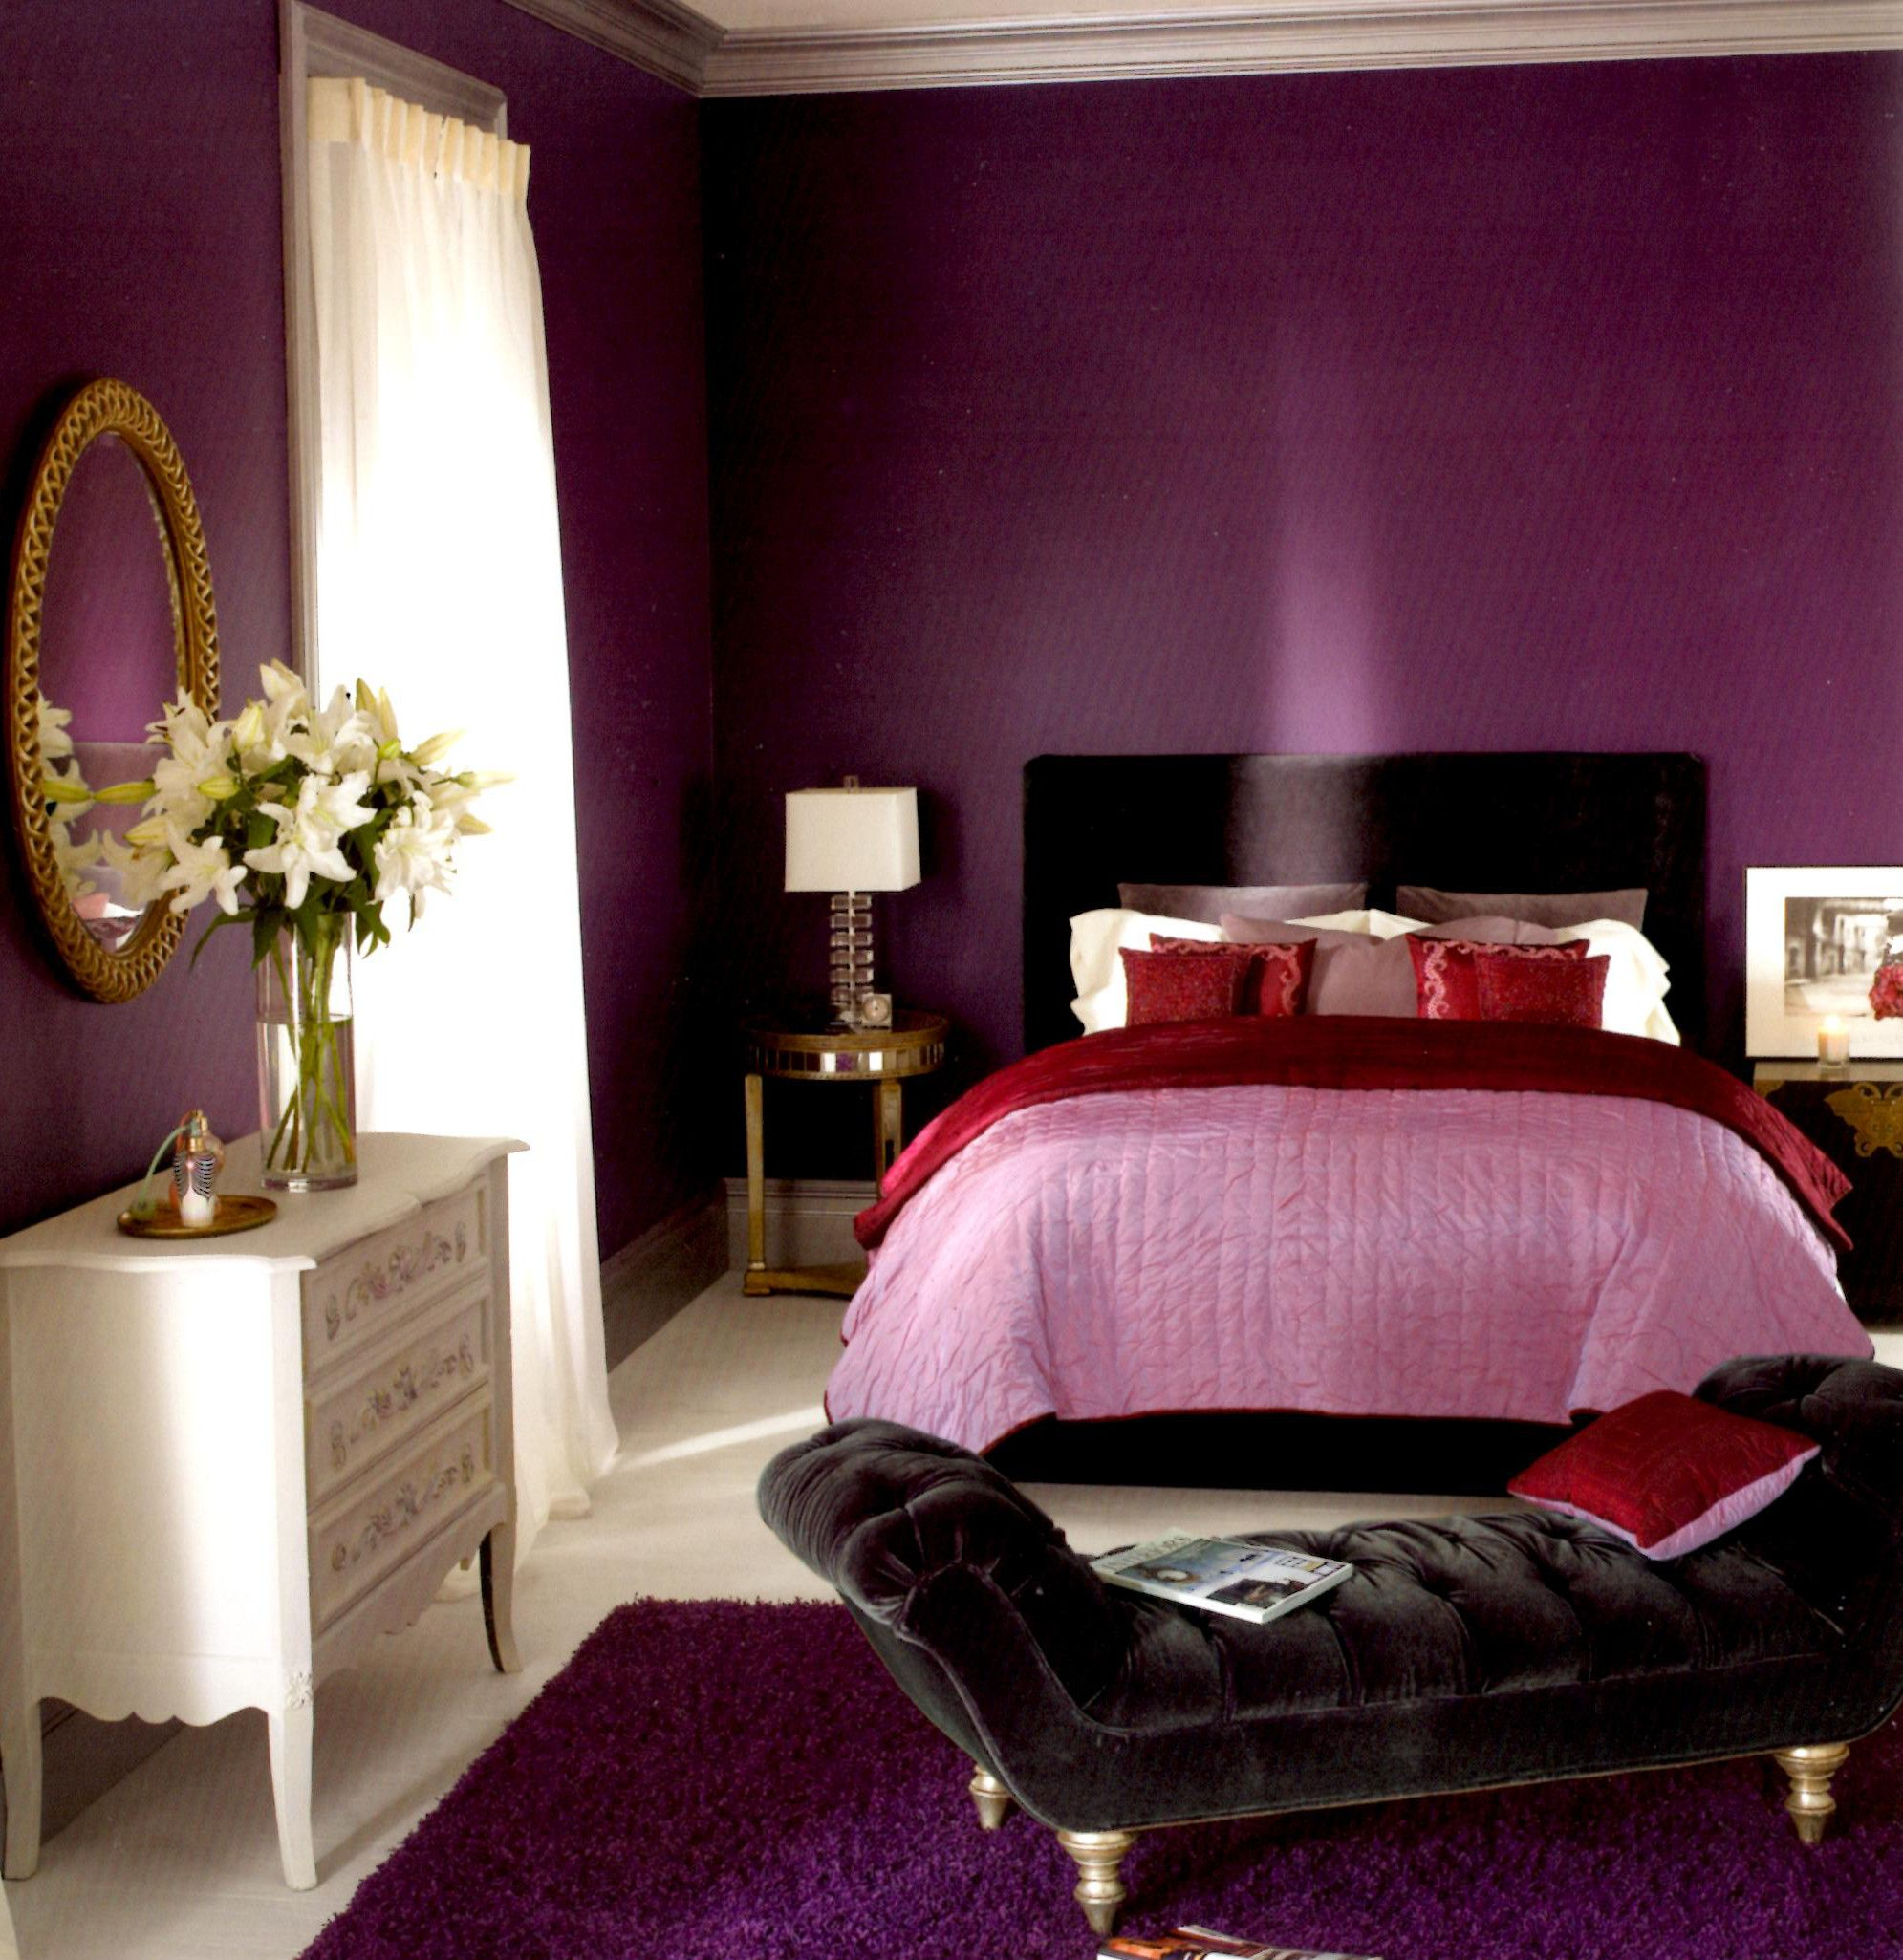 Glamorous Bedroom : Small Living Room Paint Colors Ideas Tiny Wall Color within Small Bedroom Wall Colors